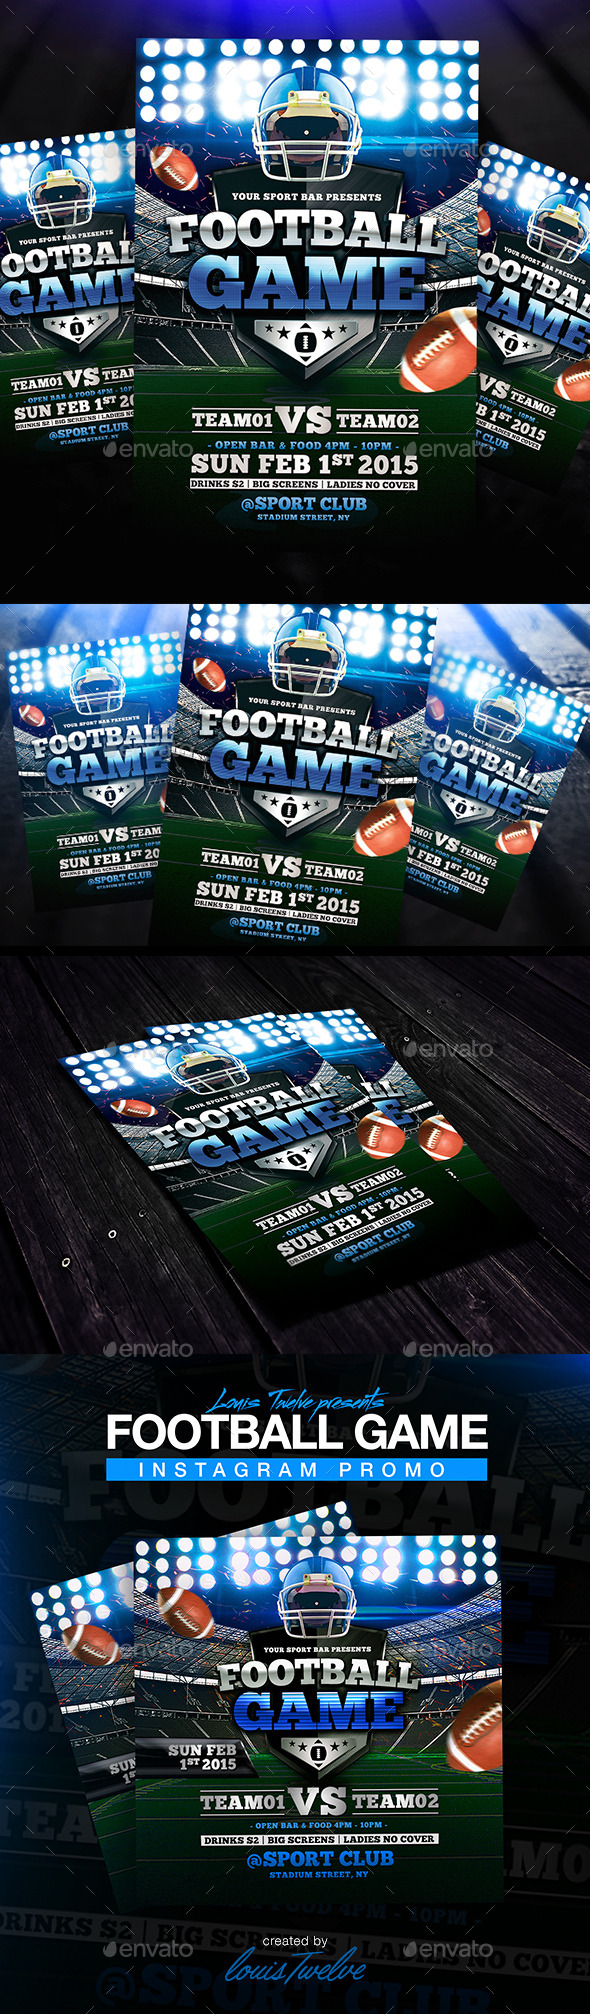 GraphicRiver Football Game Flyer & Instagram Promo 9149125